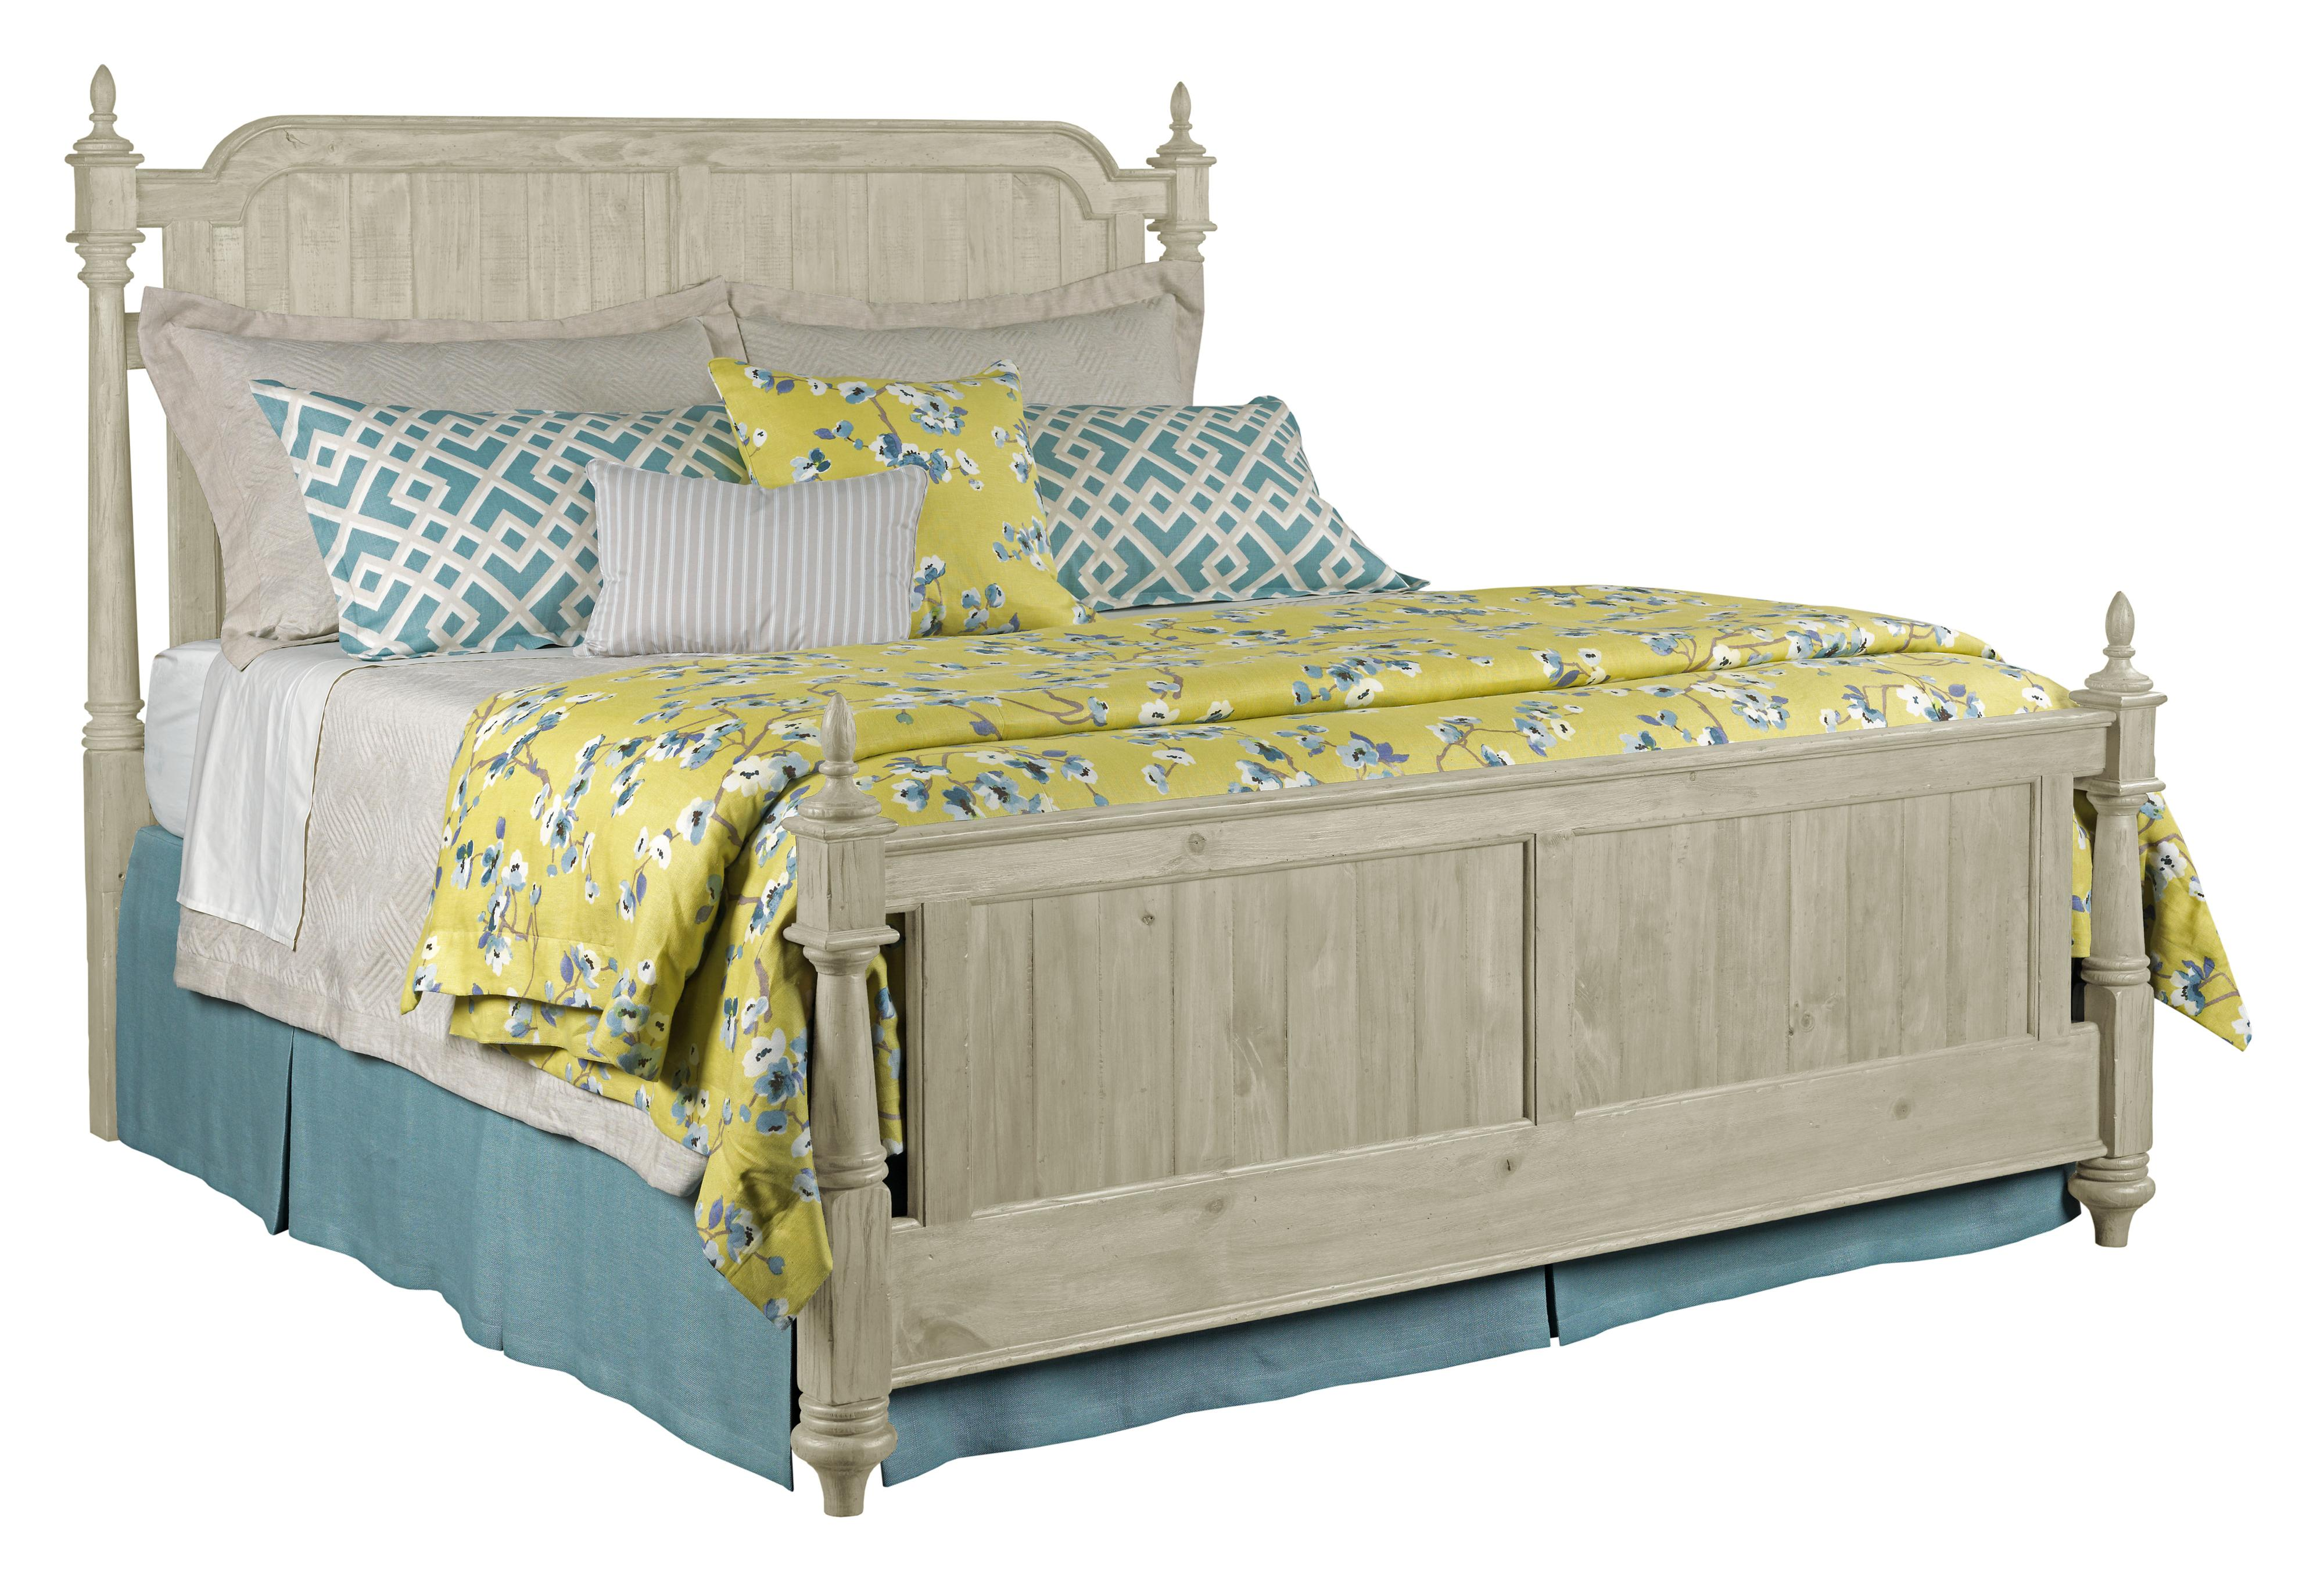 Kincaid Furniture Weatherford Westland Queen Bed Package With Bed Posts And Panel Footboard